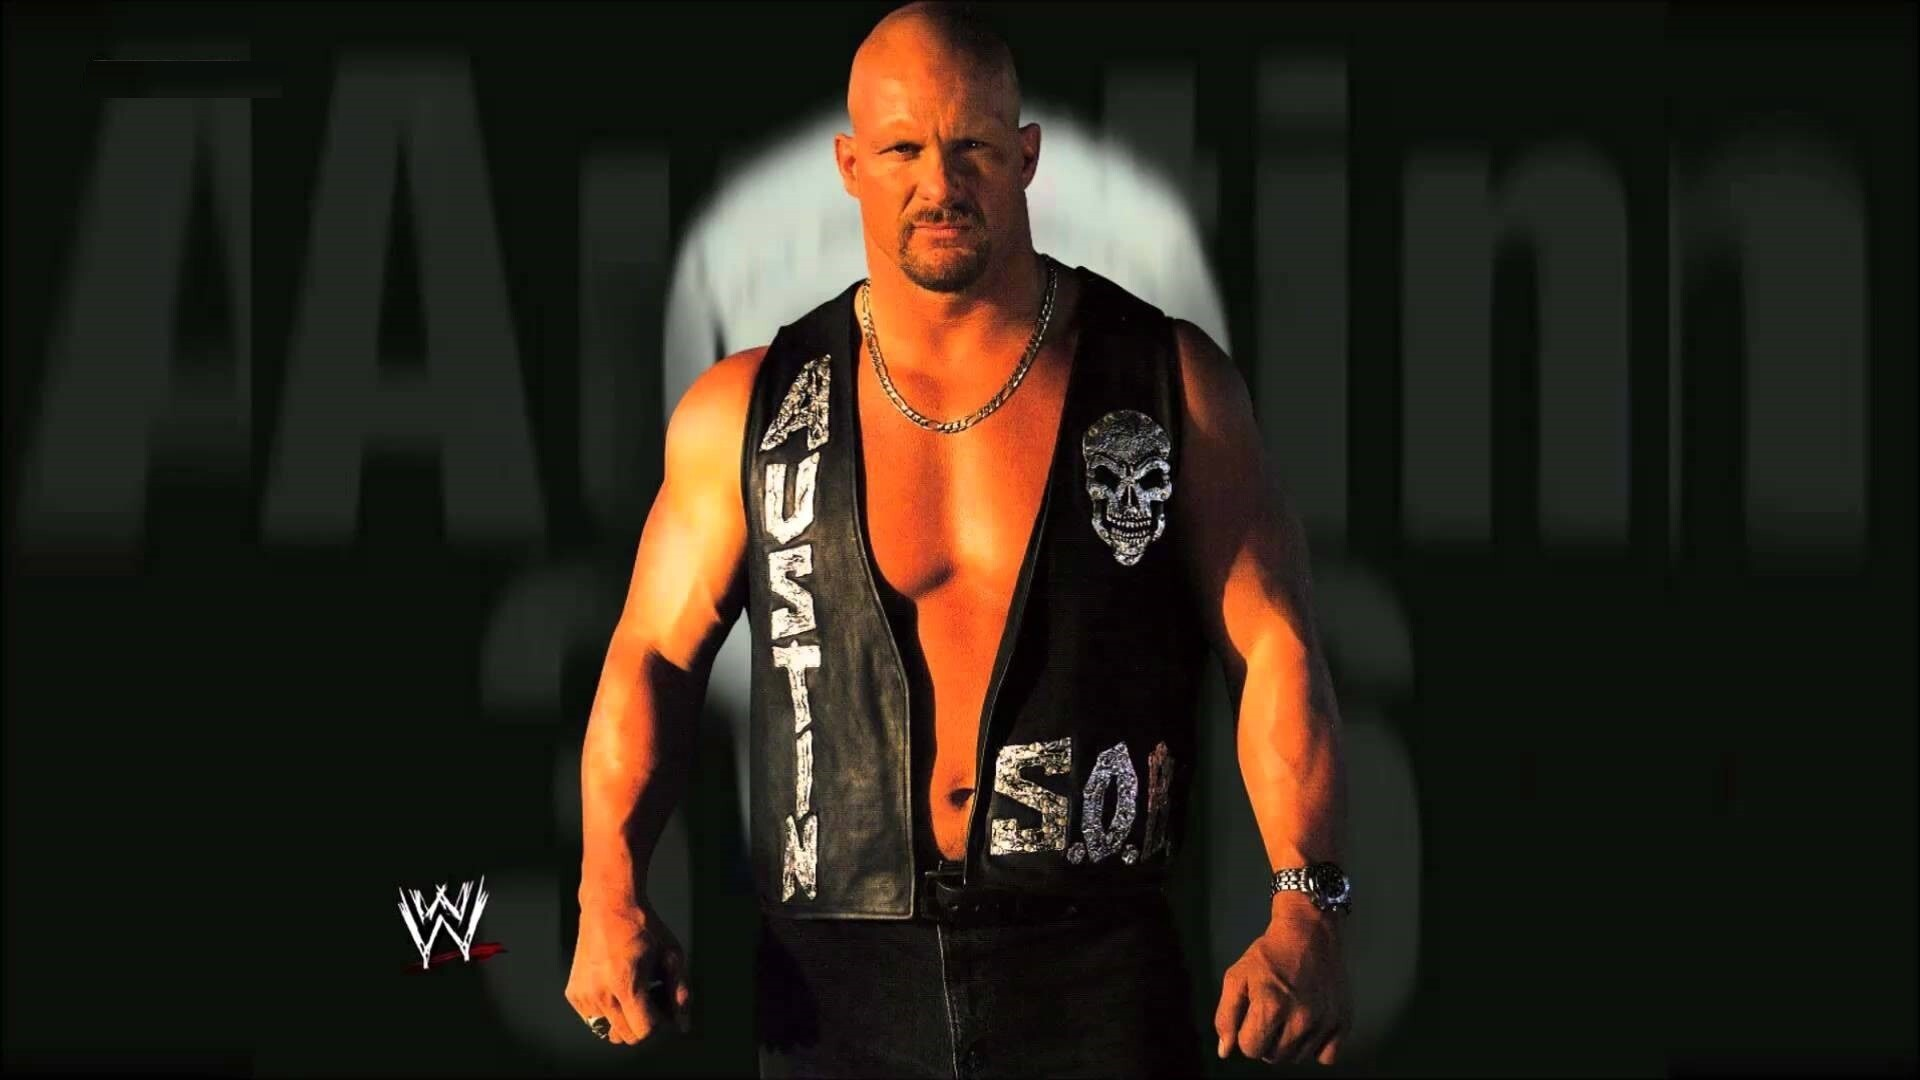 Wwe superstar stone cold steve austin vest hd wallpapers voltagebd Images